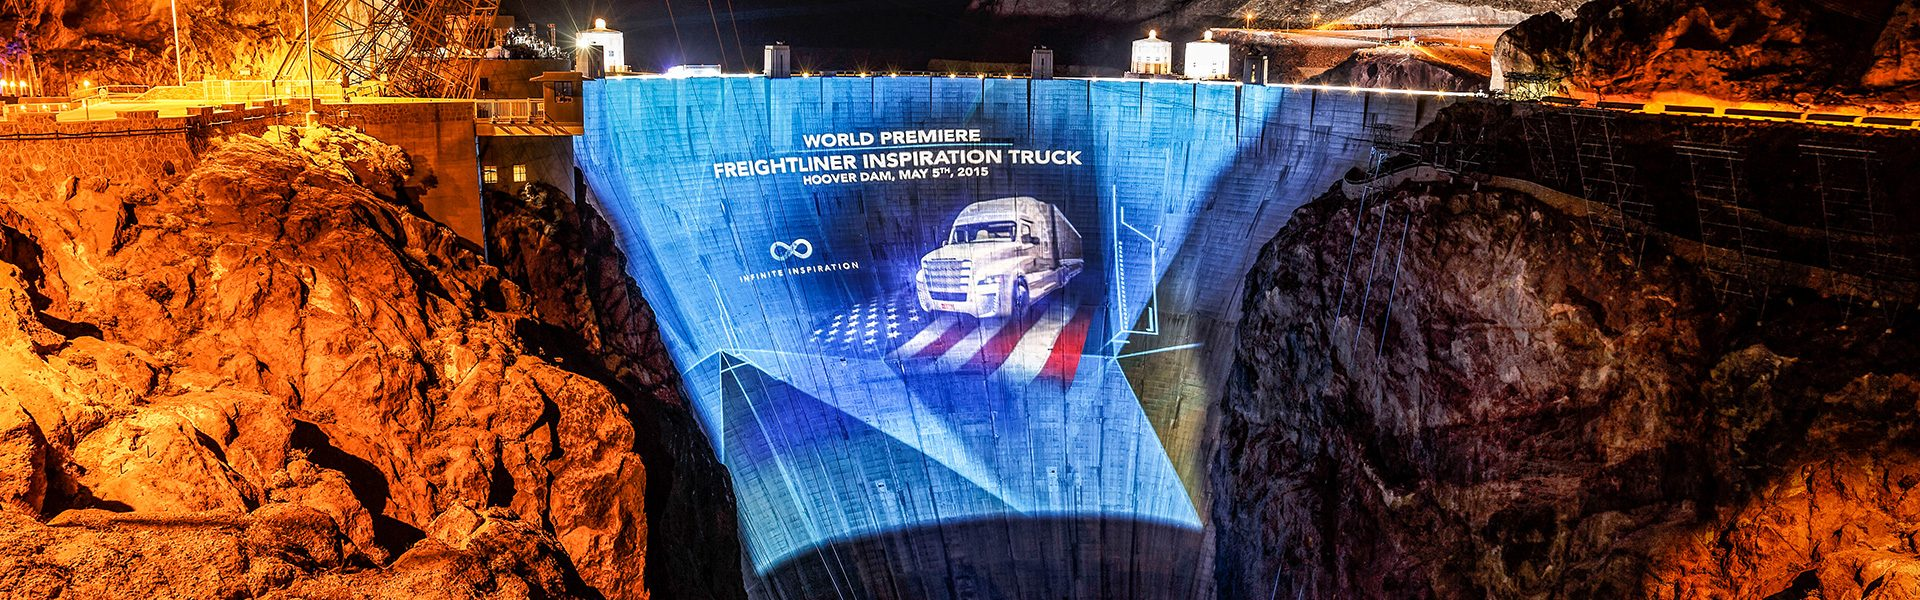 The spectacular world premiere of the Freightliner Inspiration Truck at Hoover Dam